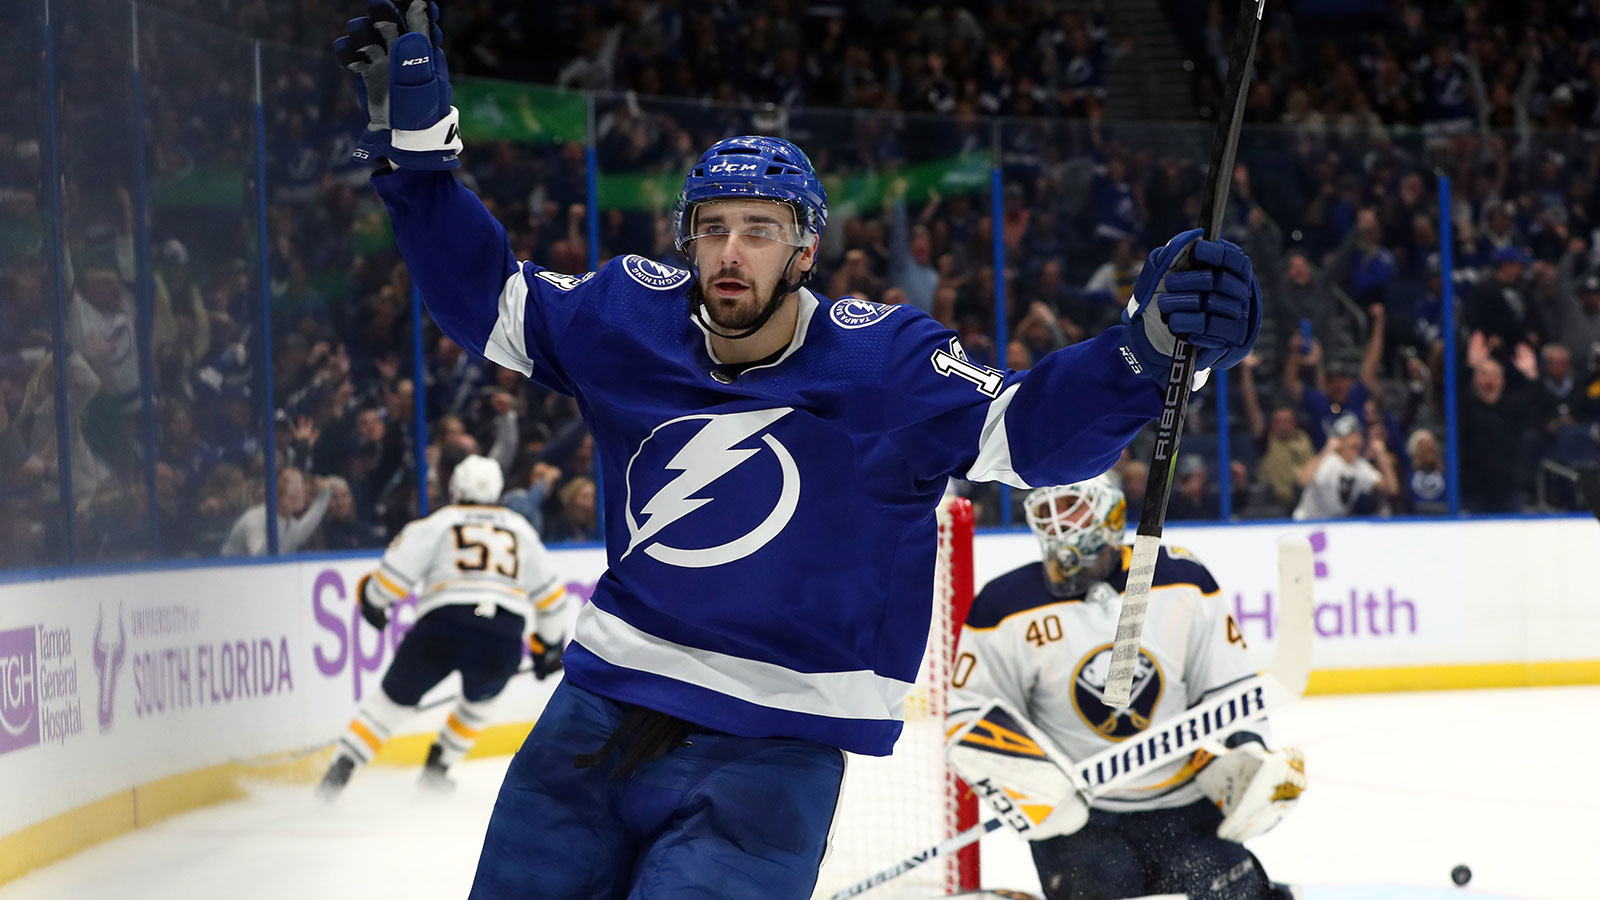 Short-handed goals from Cedric Paquette, Ondrej Palat lead Lightning past Sabres